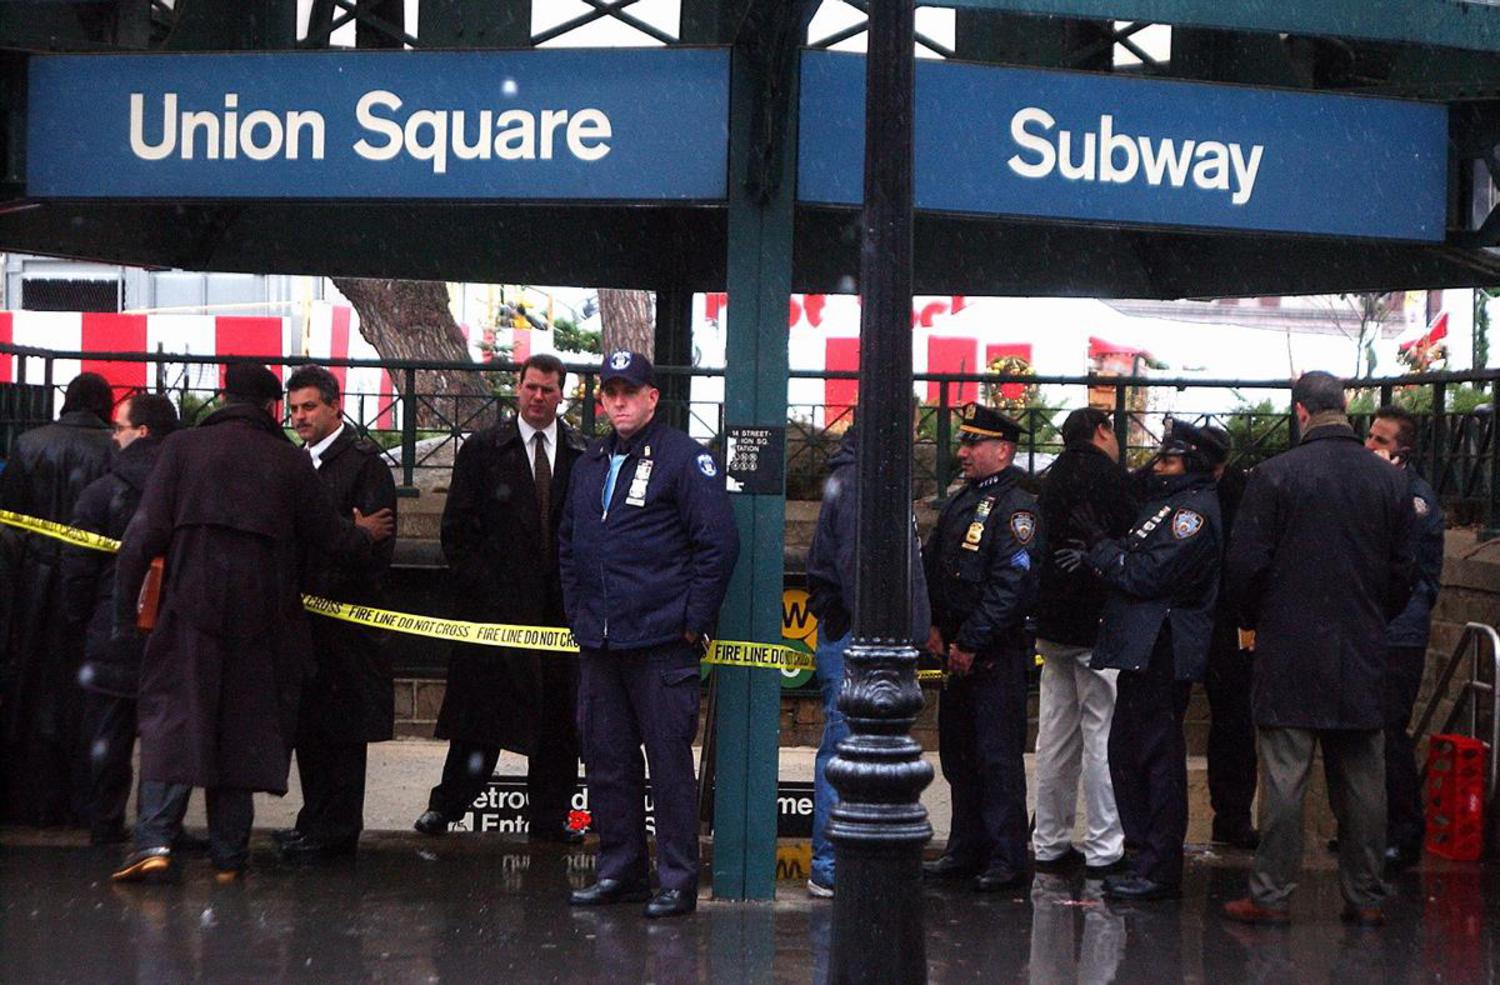 2000's: With 9/11 still fresh in the minds of many, cops crowded the entrance to the subway station at Union Square in 2002 after 20 to 30 suspicious packages emblazoned with the word 'fear' were found. Emergency services, the bomb squad and crime scene units were called to the scene.